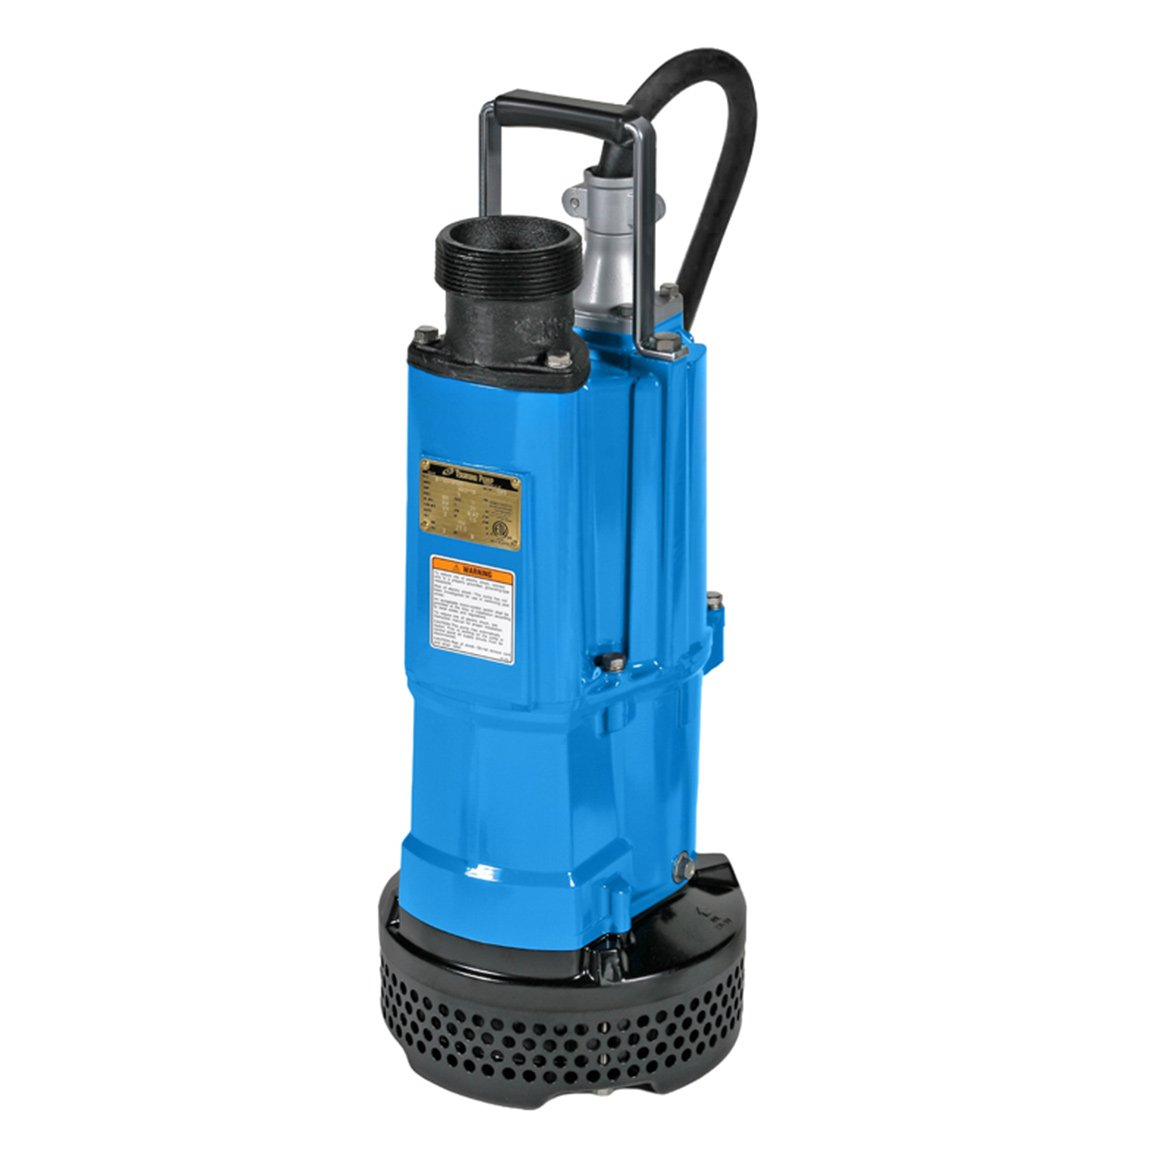 Tsurumi NK3-22; heavy duty submersible dewatering pump, 3hp, 220V, 3'' discharge